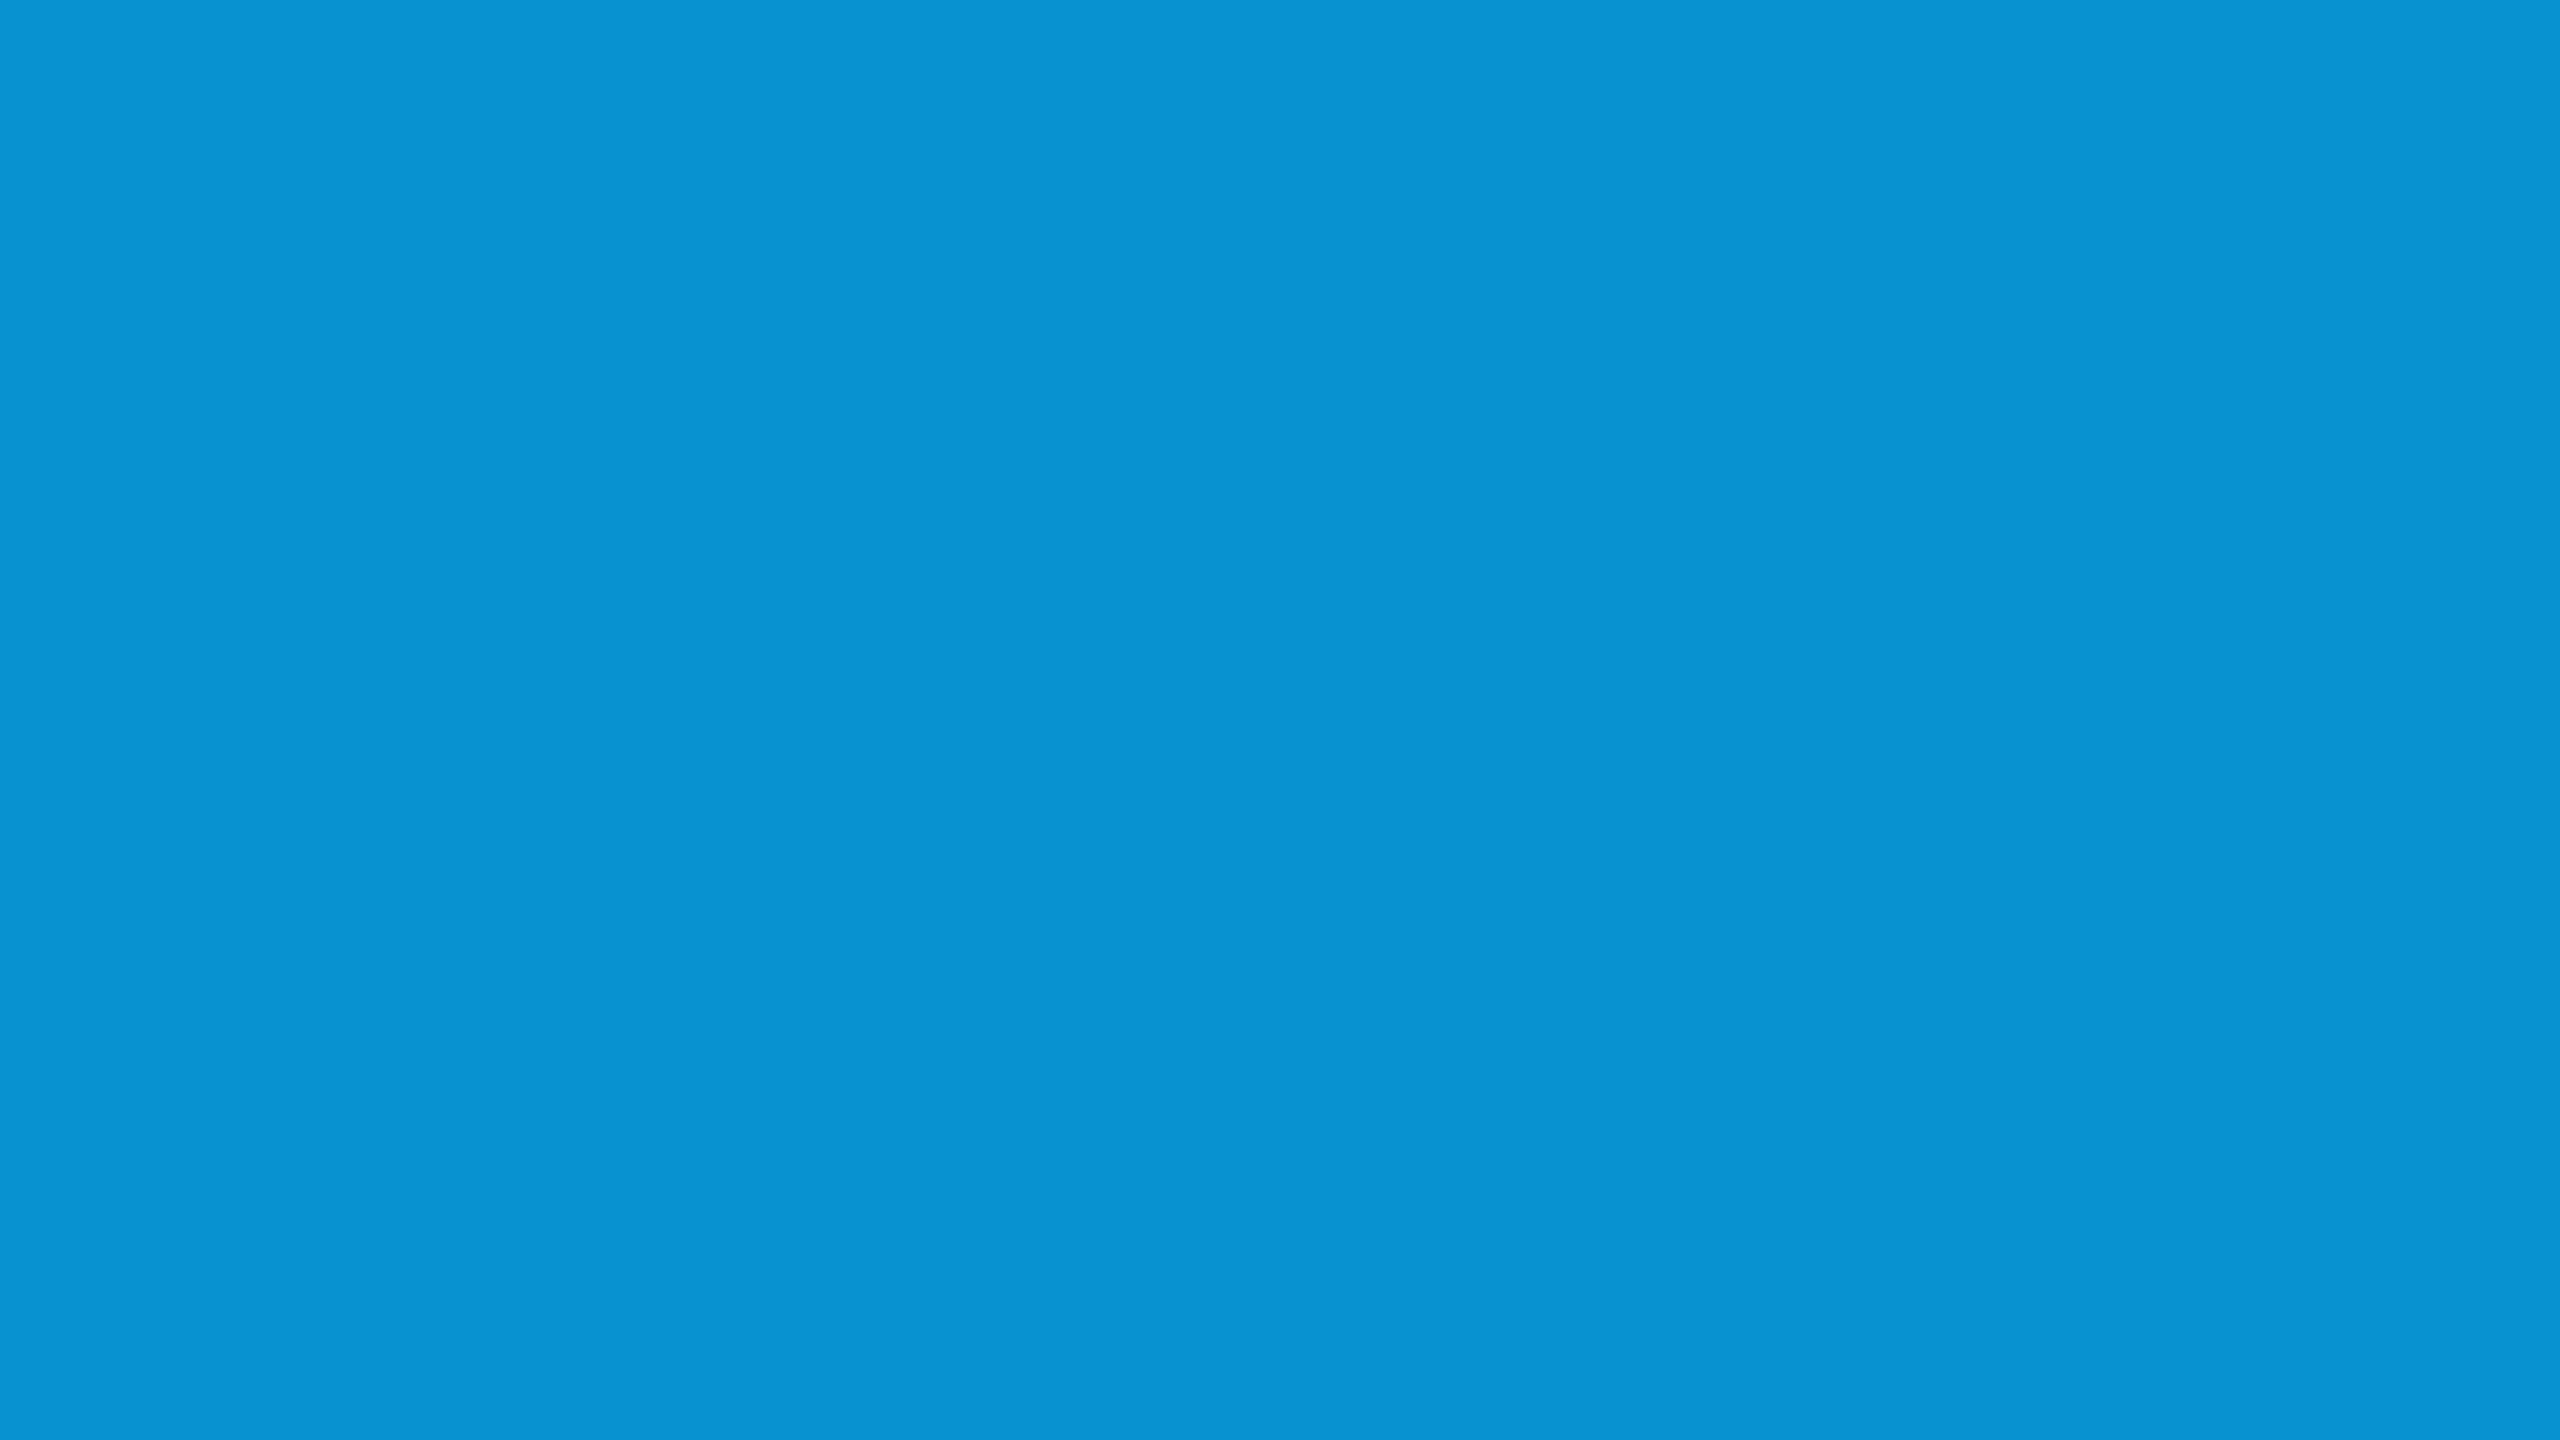 2560x1440 Rich Electric Blue Solid Color Background